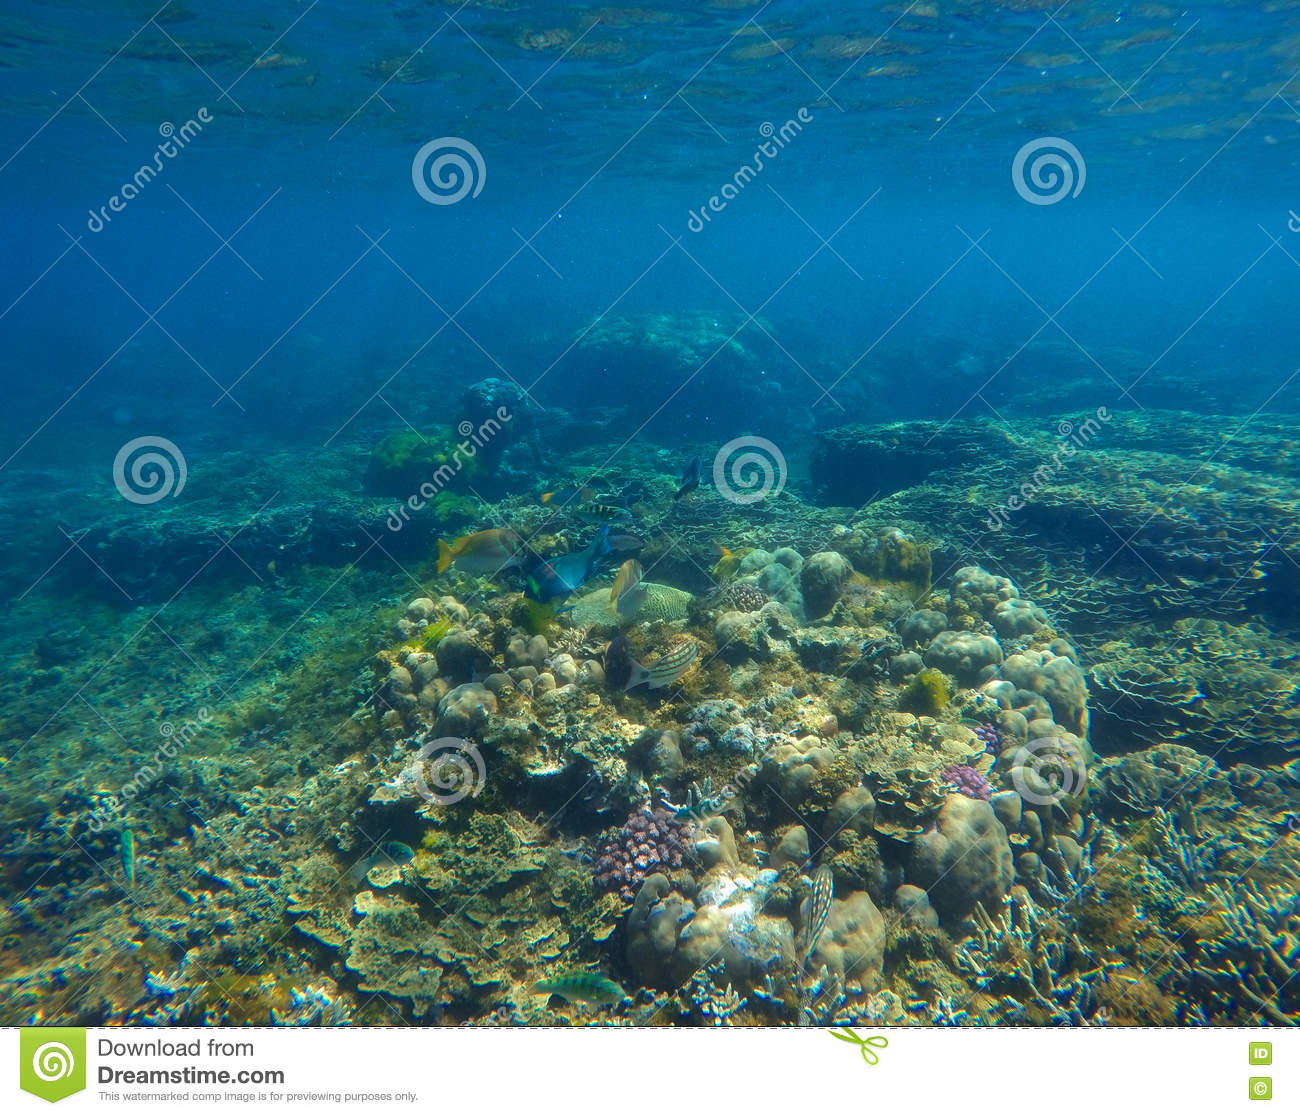 nature coral underwater landscape - photo #22